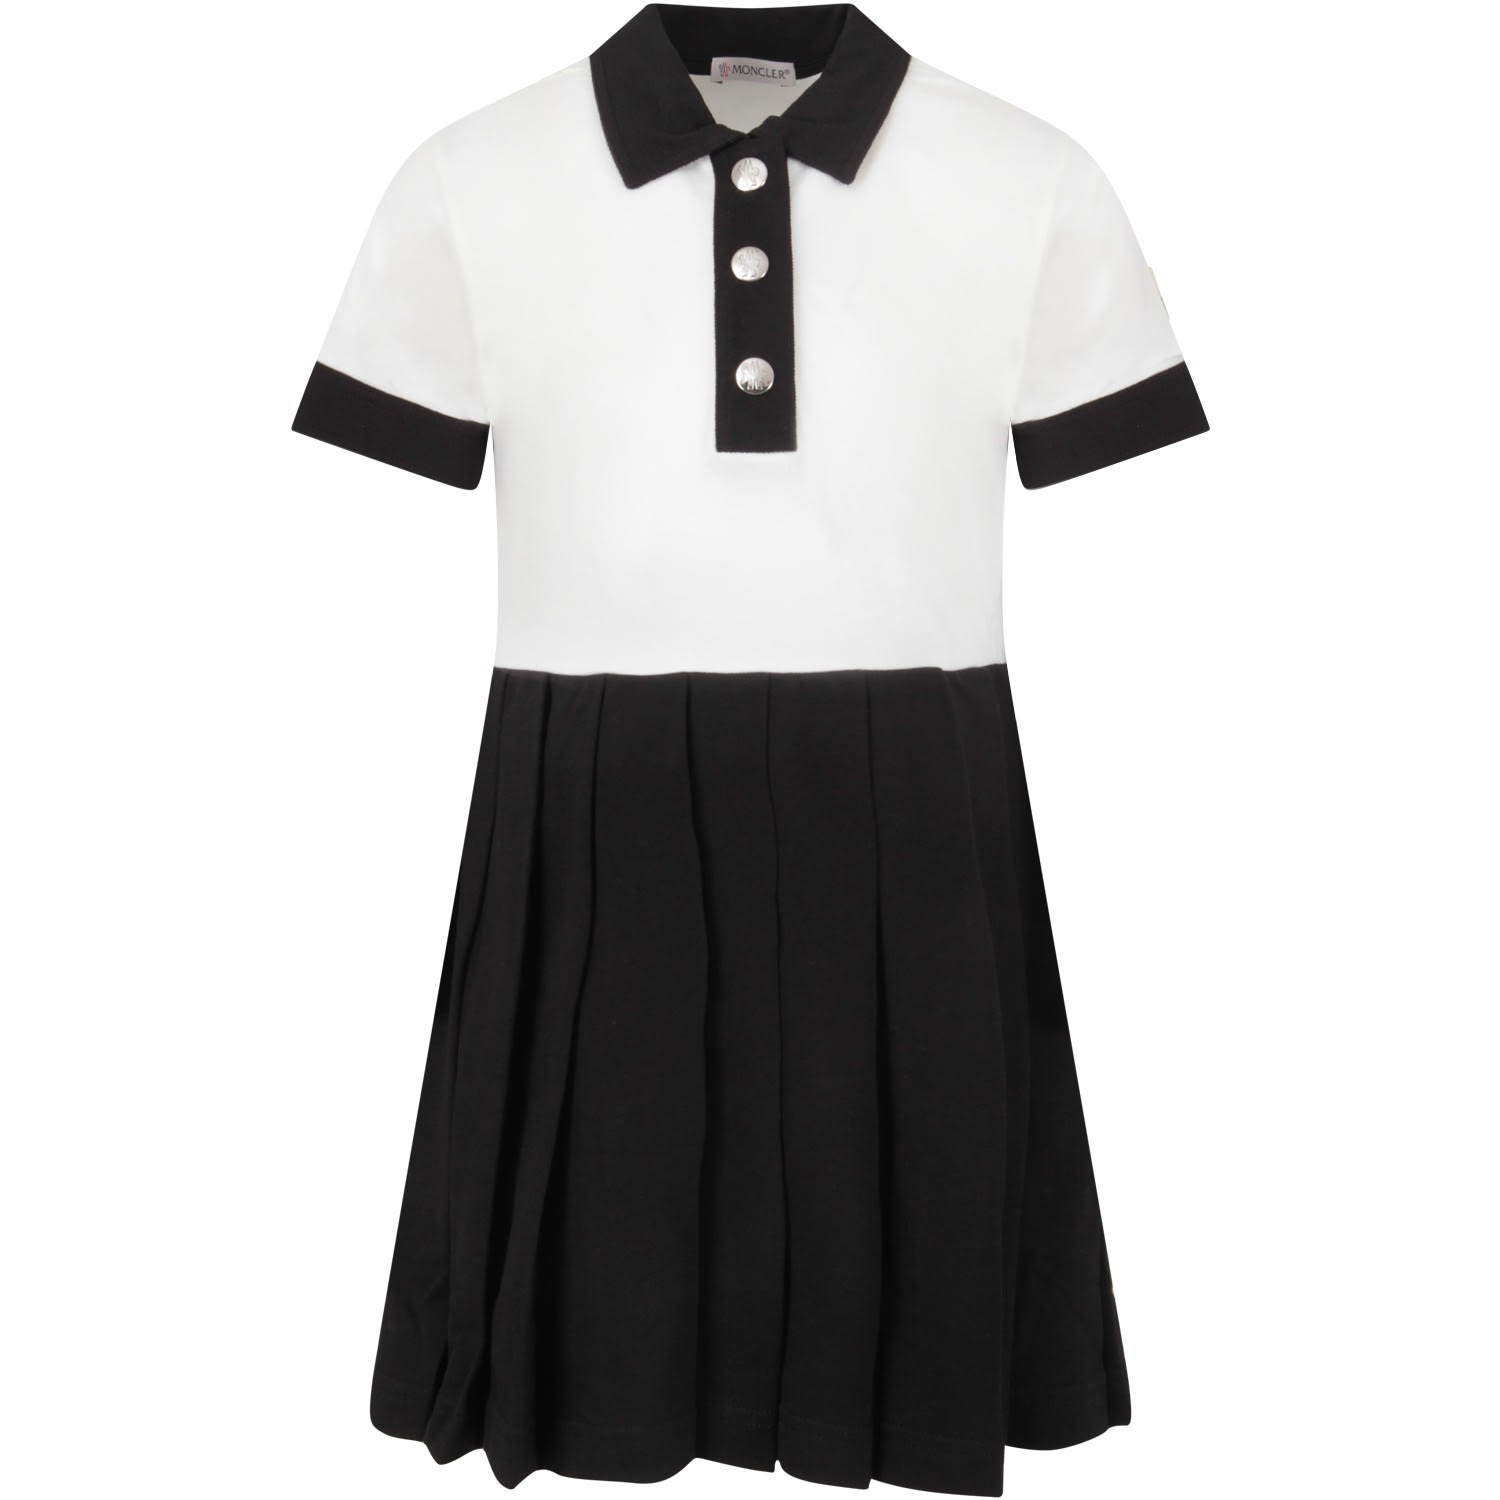 Buy Moncler Ivory And Black Girl Dress With Iconic Patch online, shop Moncler with free shipping